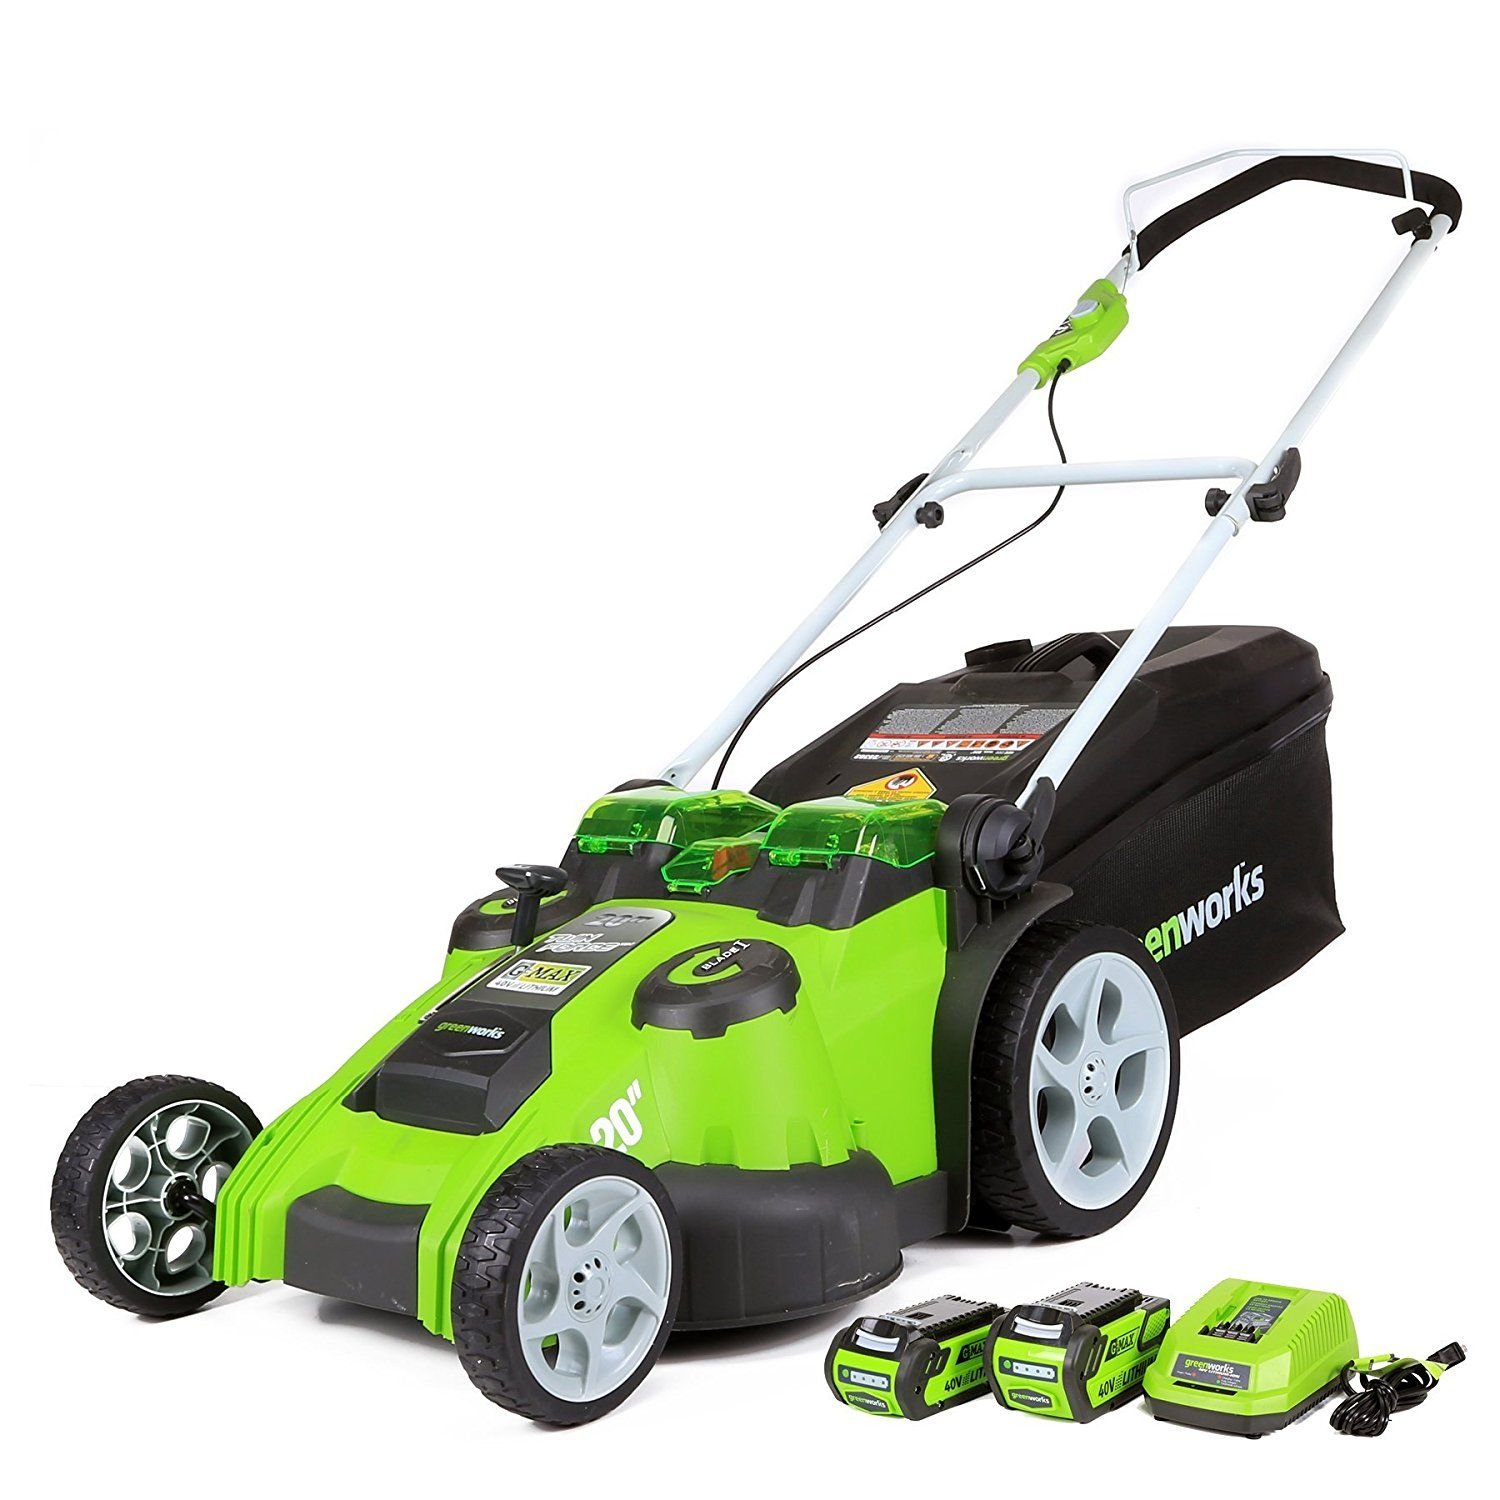 2939 Customer Reviews Greenworks 25022 12 Amp Corded 20 Inch Lawn Mower